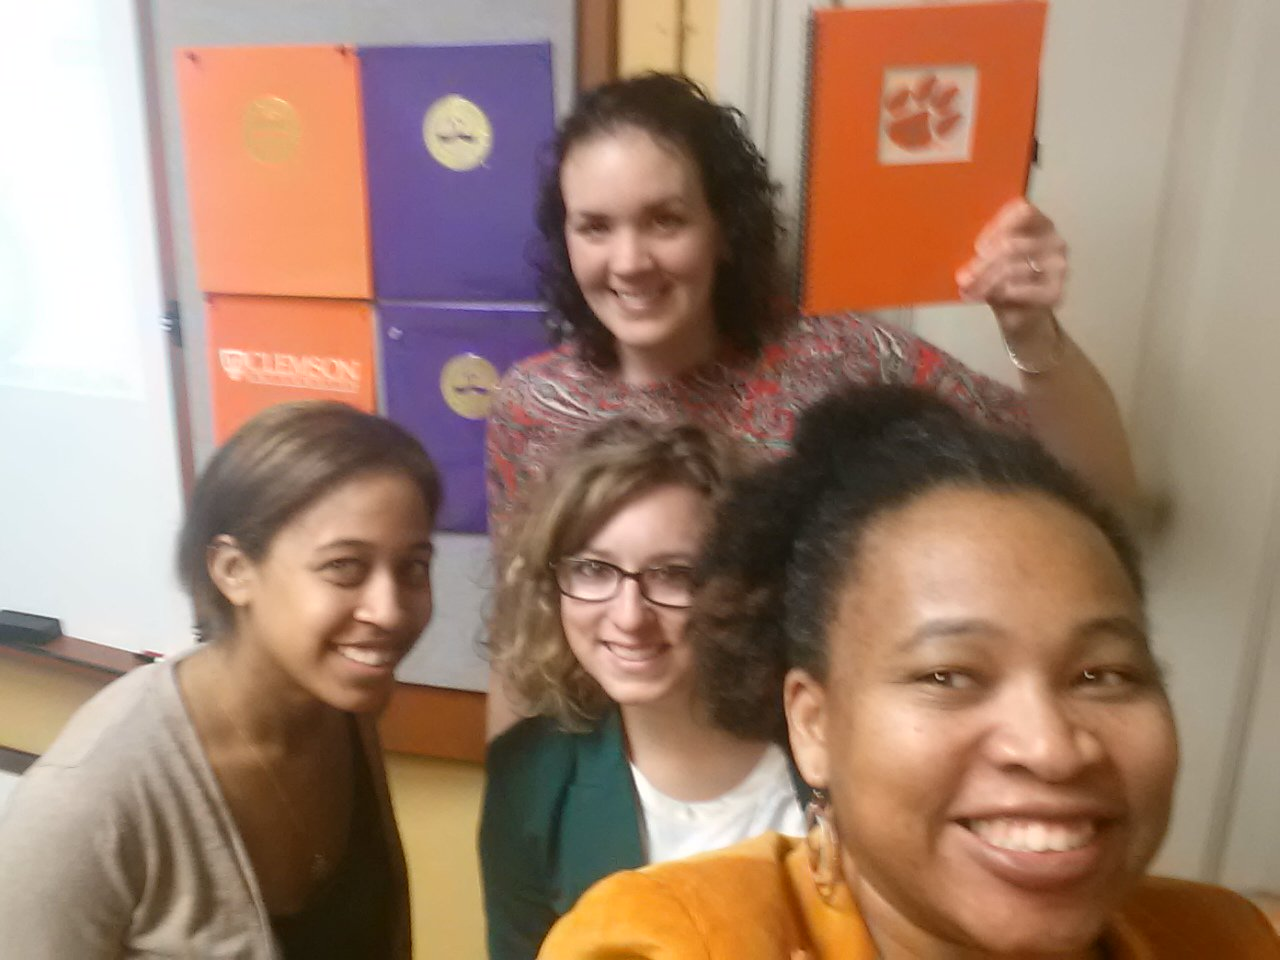 Excited to be attending #hesm15 with some of my #ClemsonFamily https://t.co/JW5sJPLyPV @karinejoly!  Hello from SC! https://t.co/i8L5B6G4CA